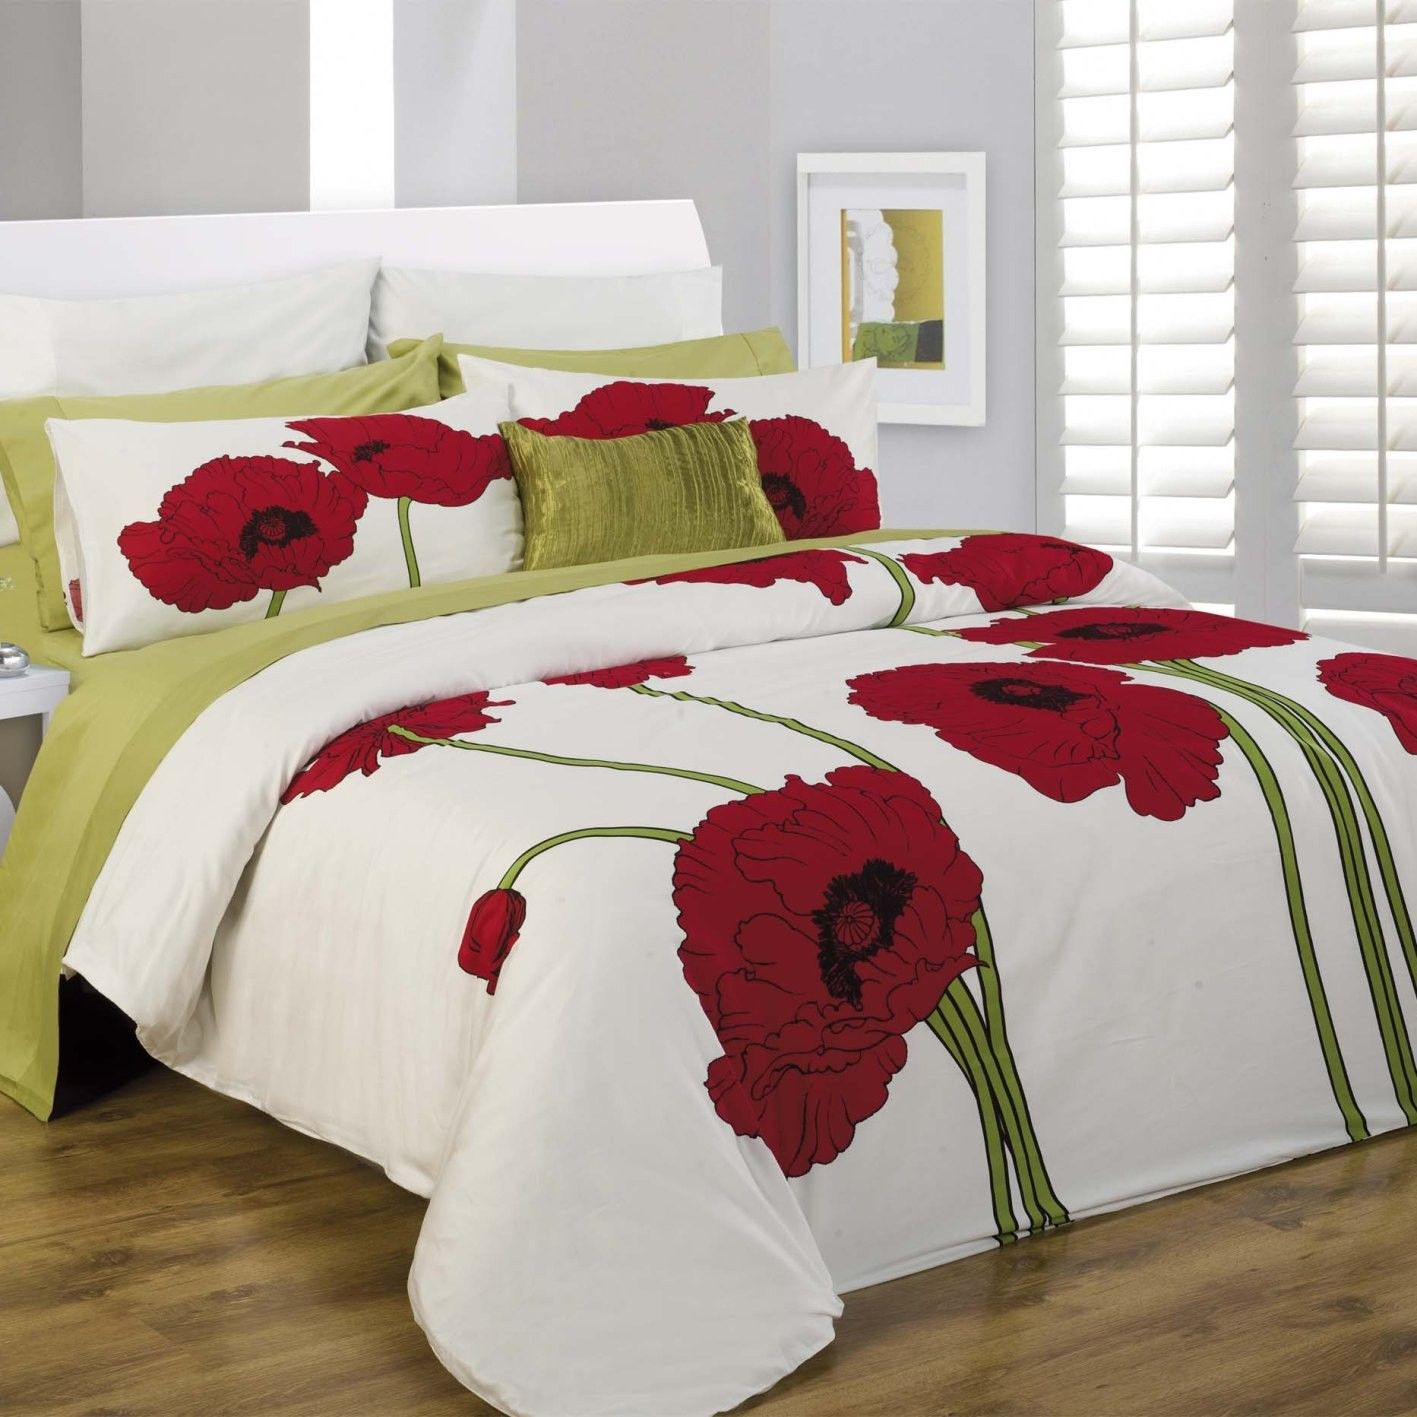 Grey And Lime Green Bedding Daniadown Red Poppy Floral Duvet Cover Set Bedrooms Pinterest Green Duvet Covers And Turquoise